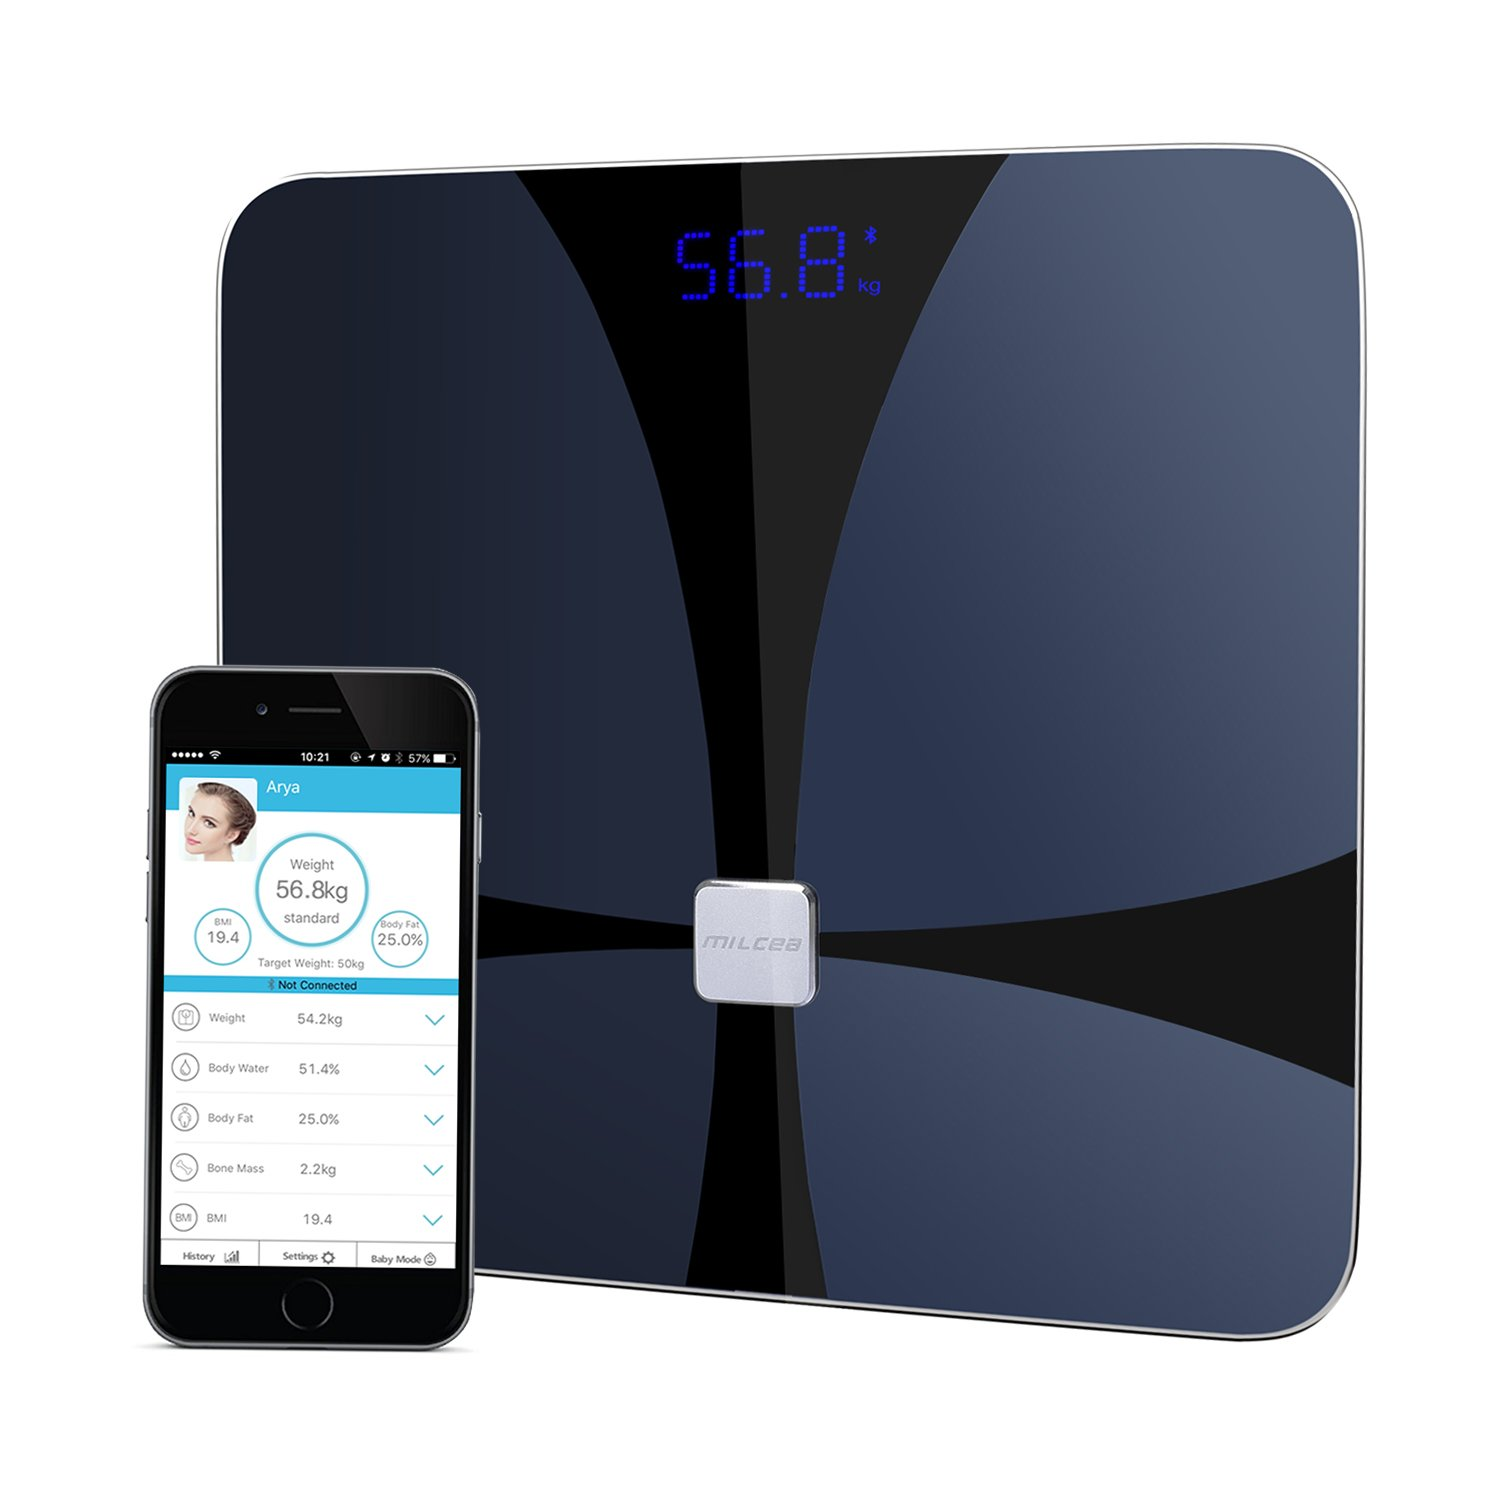 Milcea Body Fat Scale ITO Conductive Bluetooth Smart Scale with iOS Android App for Body Weight, Accurate Measurements BMI, Body Fat, Muscle Mass, Water, Bone Mass and Visceral Fat